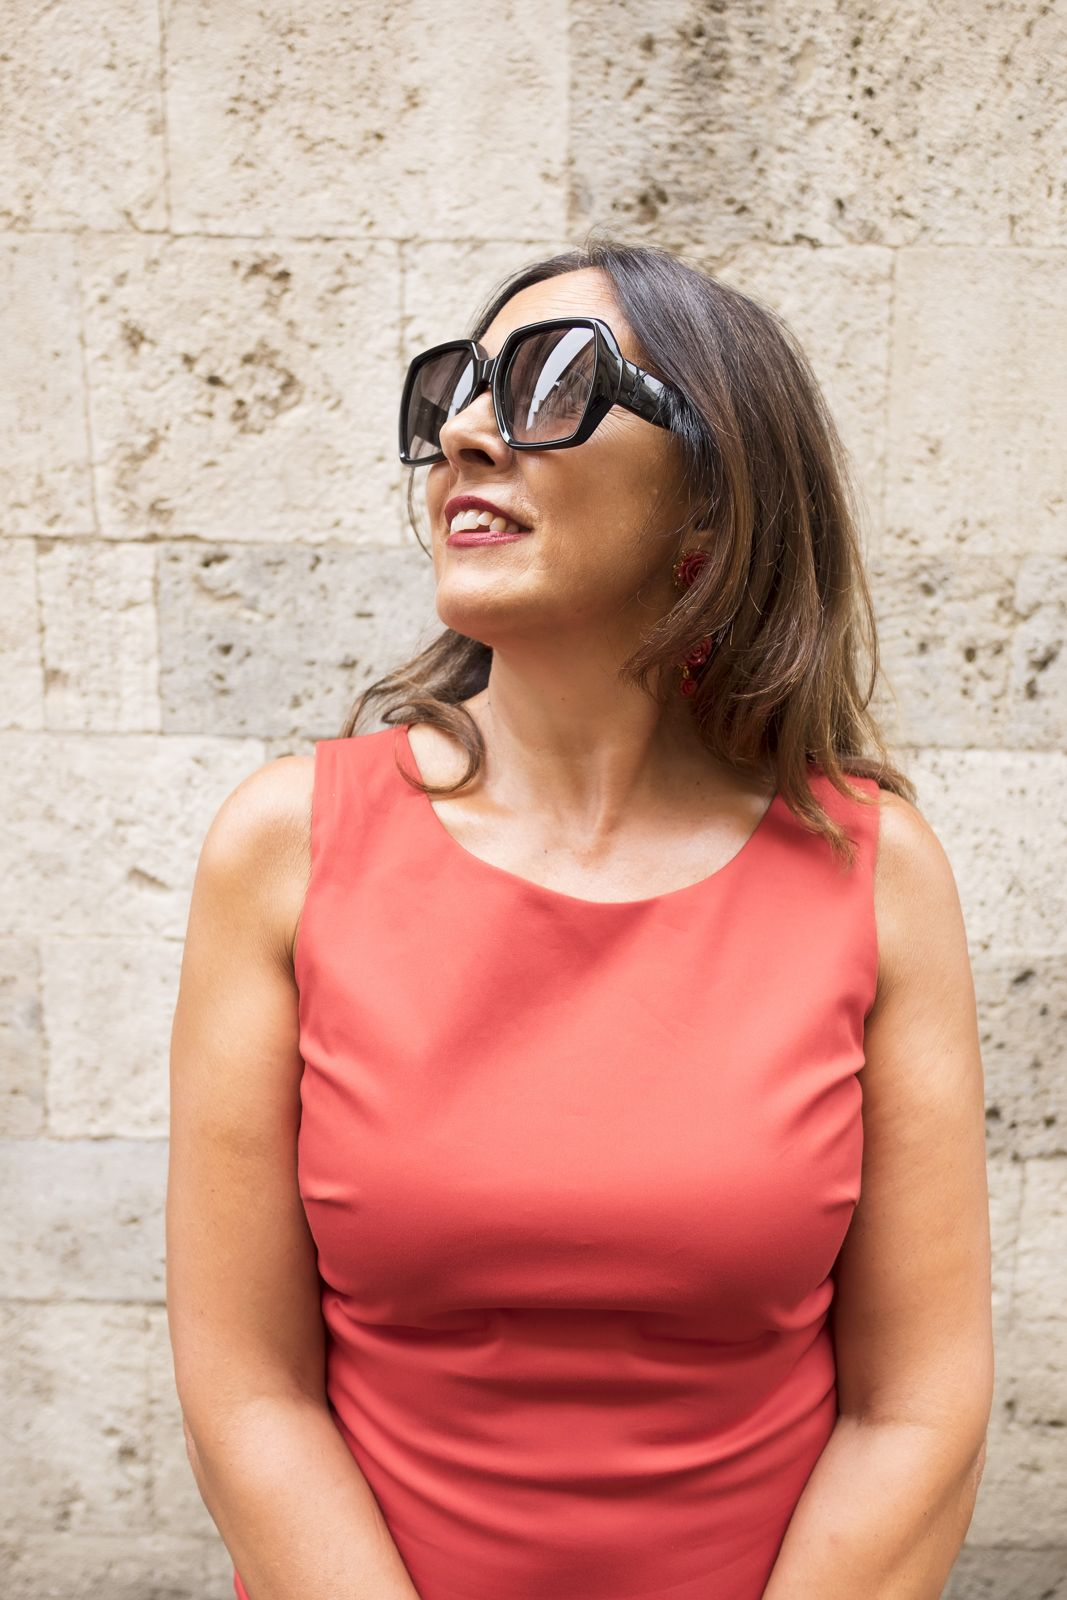 style women over forty Not Only Twenty